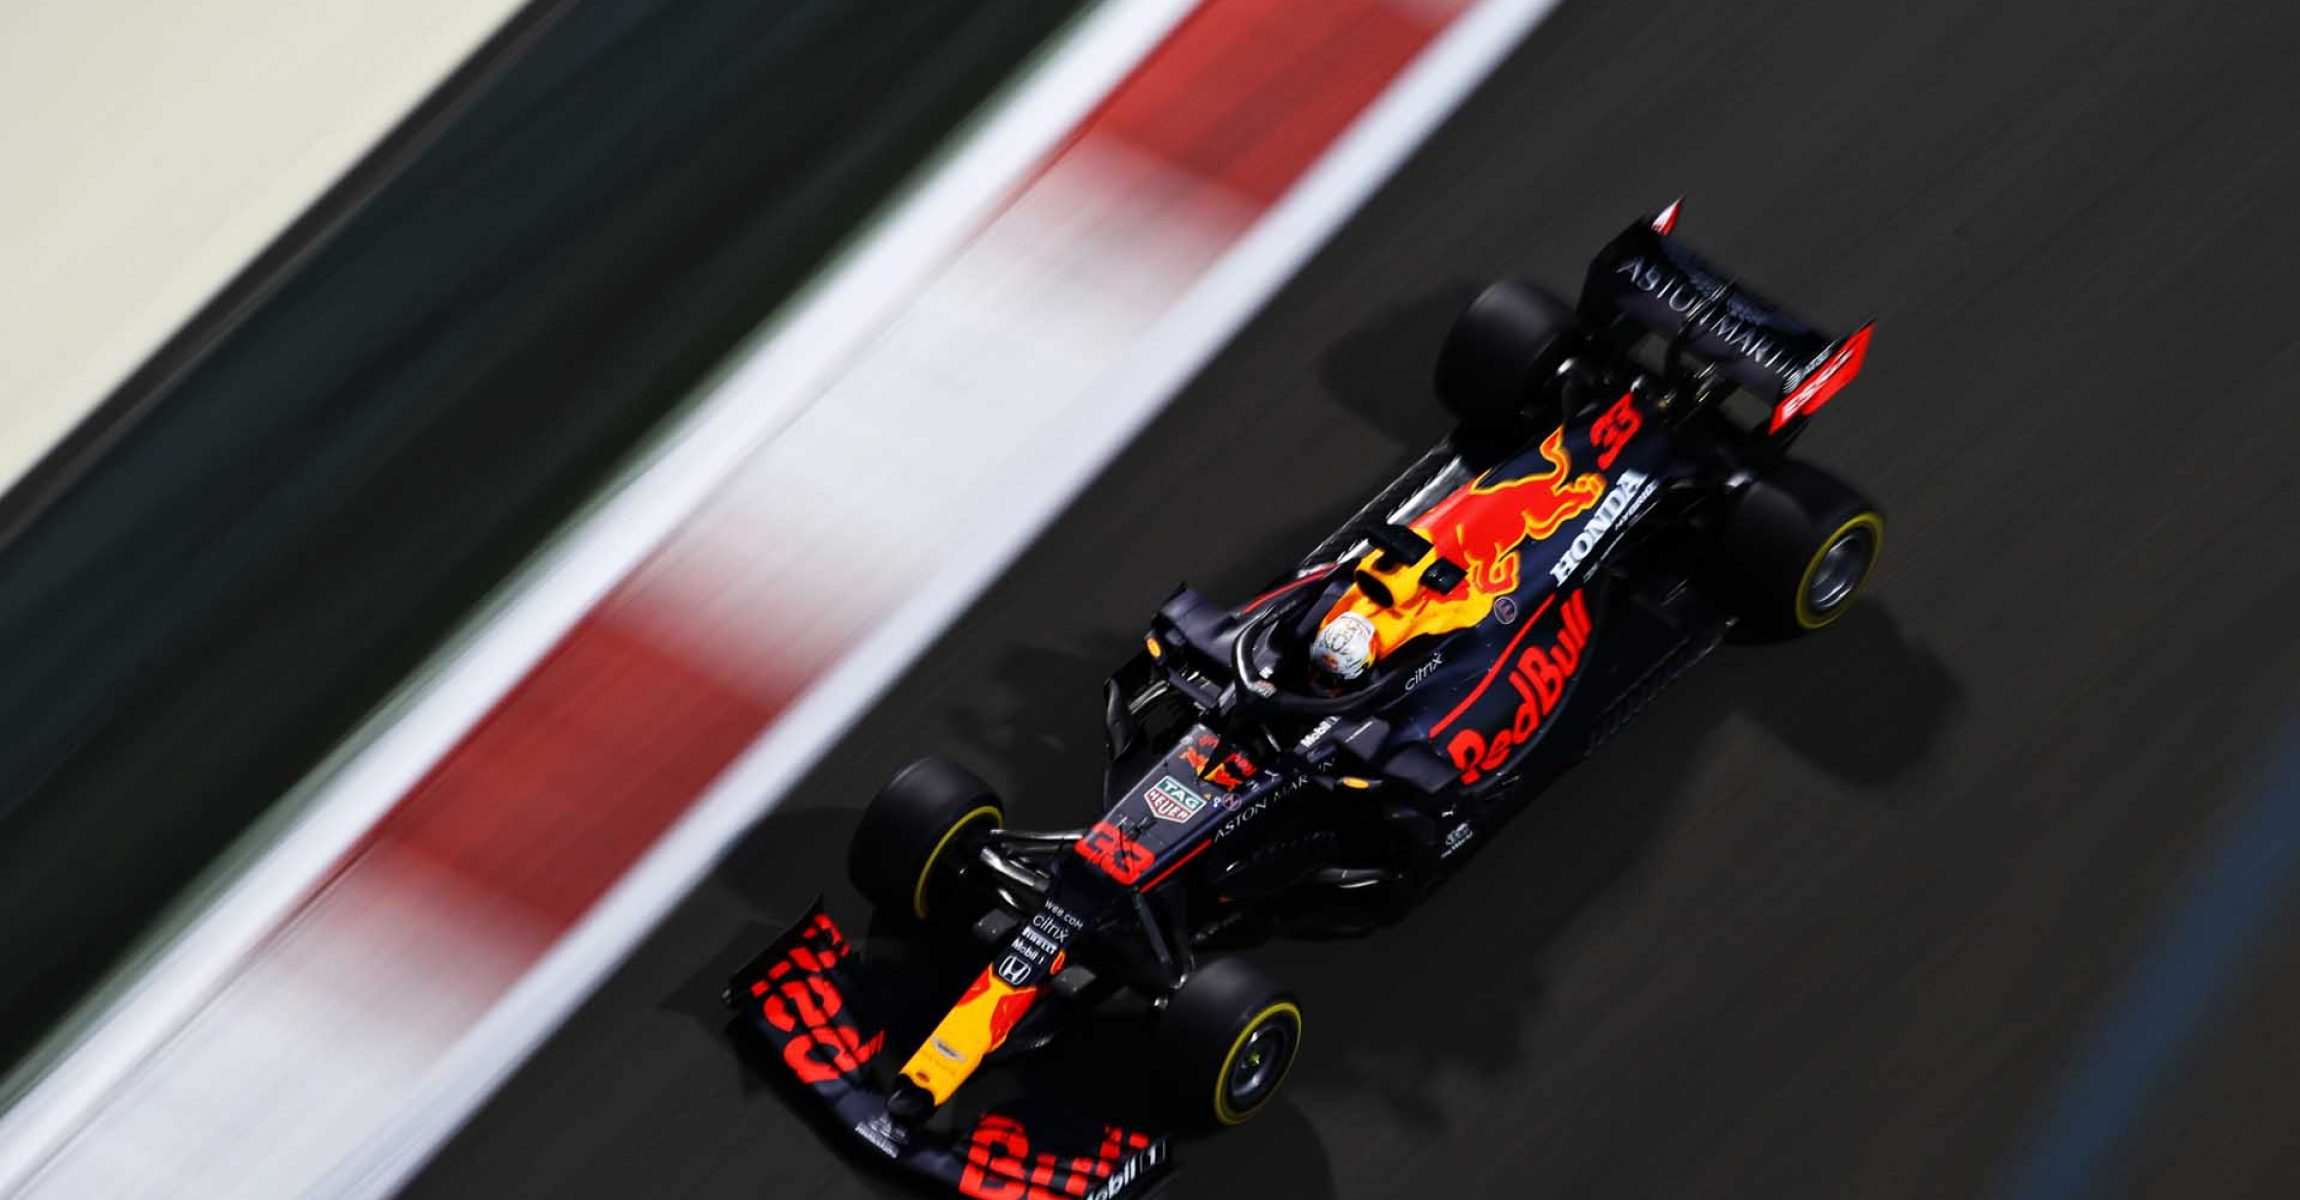 ABU DHABI, UNITED ARAB EMIRATES - DECEMBER 11: Max Verstappen of the Netherlands driving the (33) Aston Martin Red Bull Racing RB16 during practice ahead of the F1 Grand Prix of Abu Dhabi at Yas Marina Circuit on December 11, 2020 in Abu Dhabi, United Arab Emirates. (Photo by Mark Thompson/Getty Images)